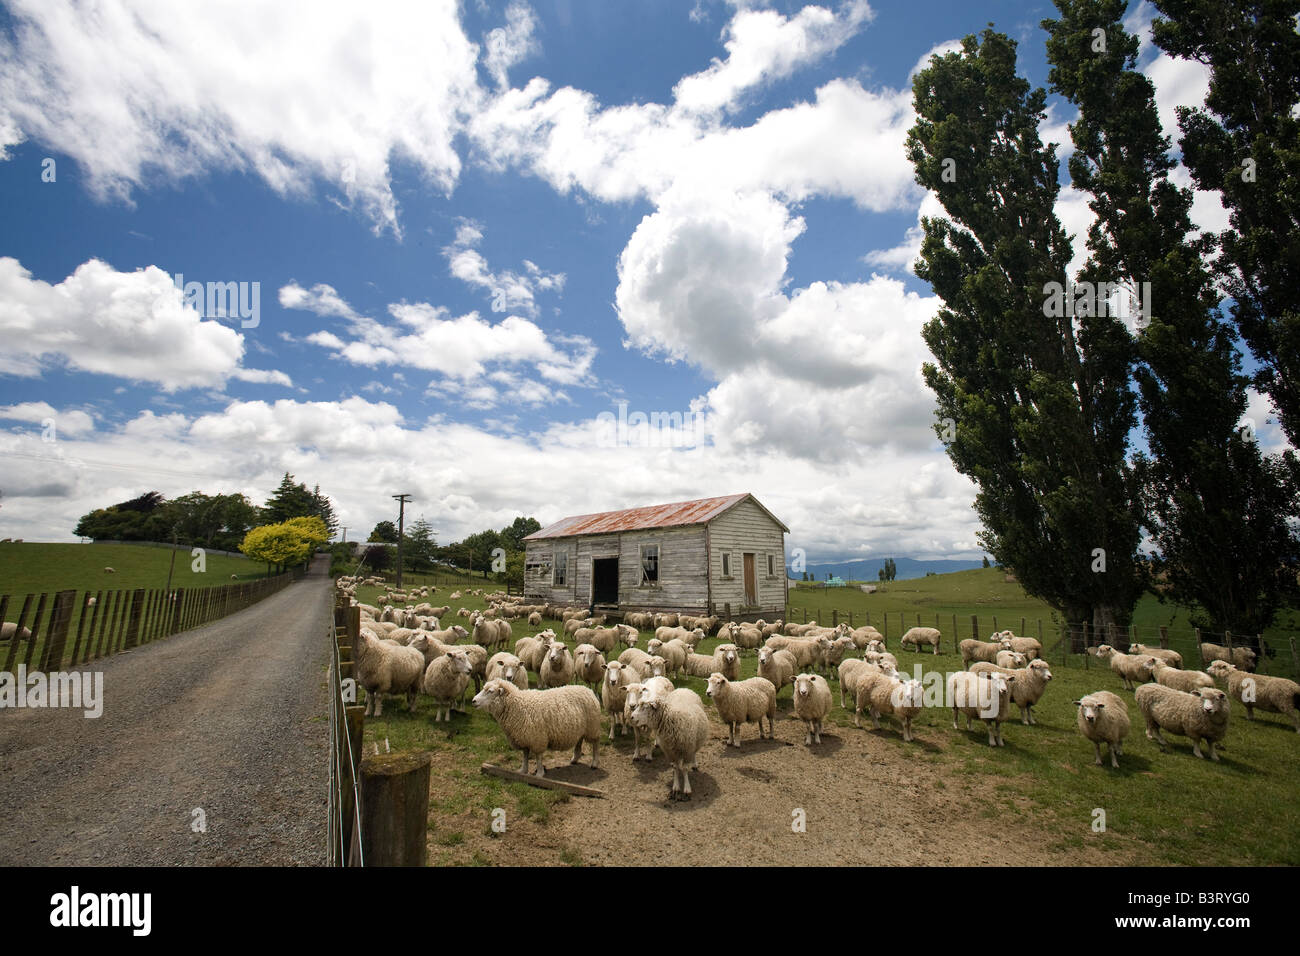 Sheep and derelict farmhouse, South Island, New Zealand - Stock Image